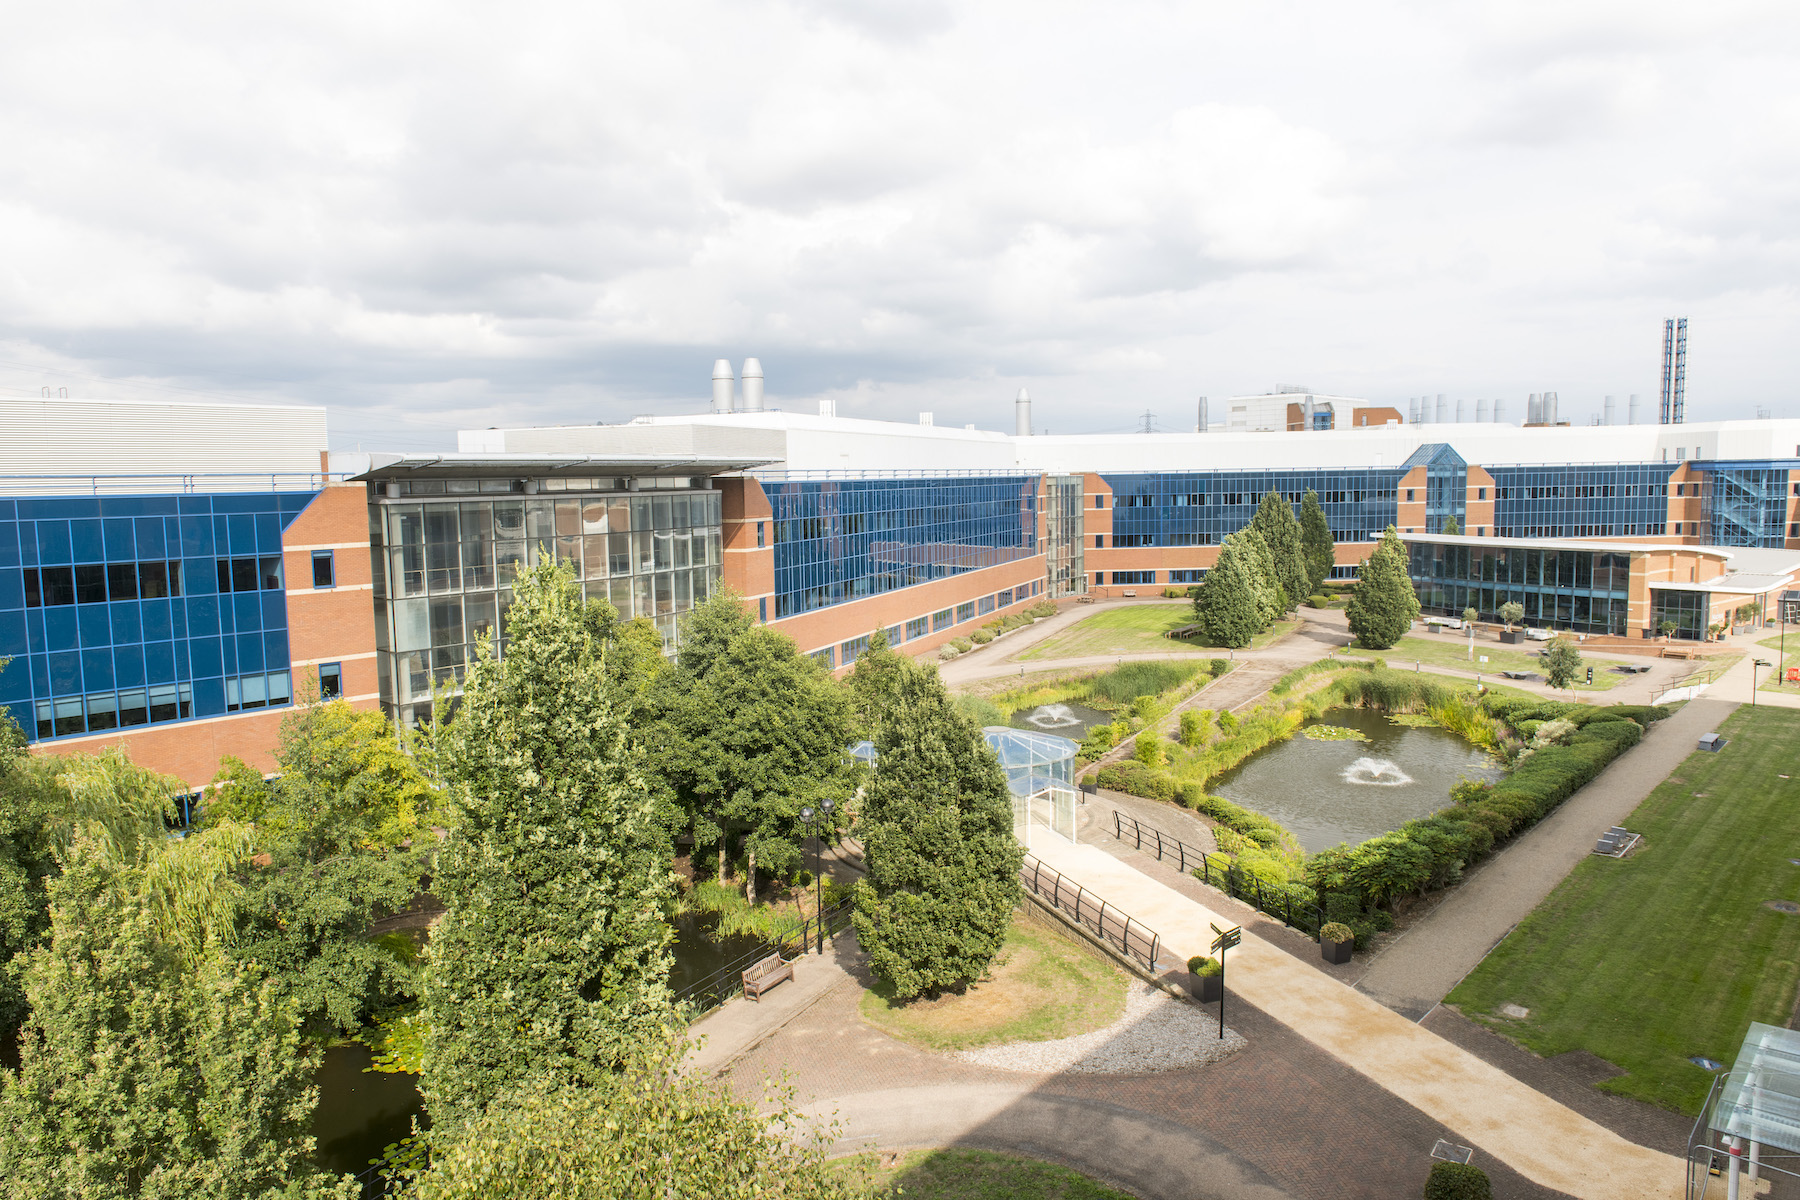 COVID-19 testing 'Lighthouse Lab' to open at Charnwood Campus